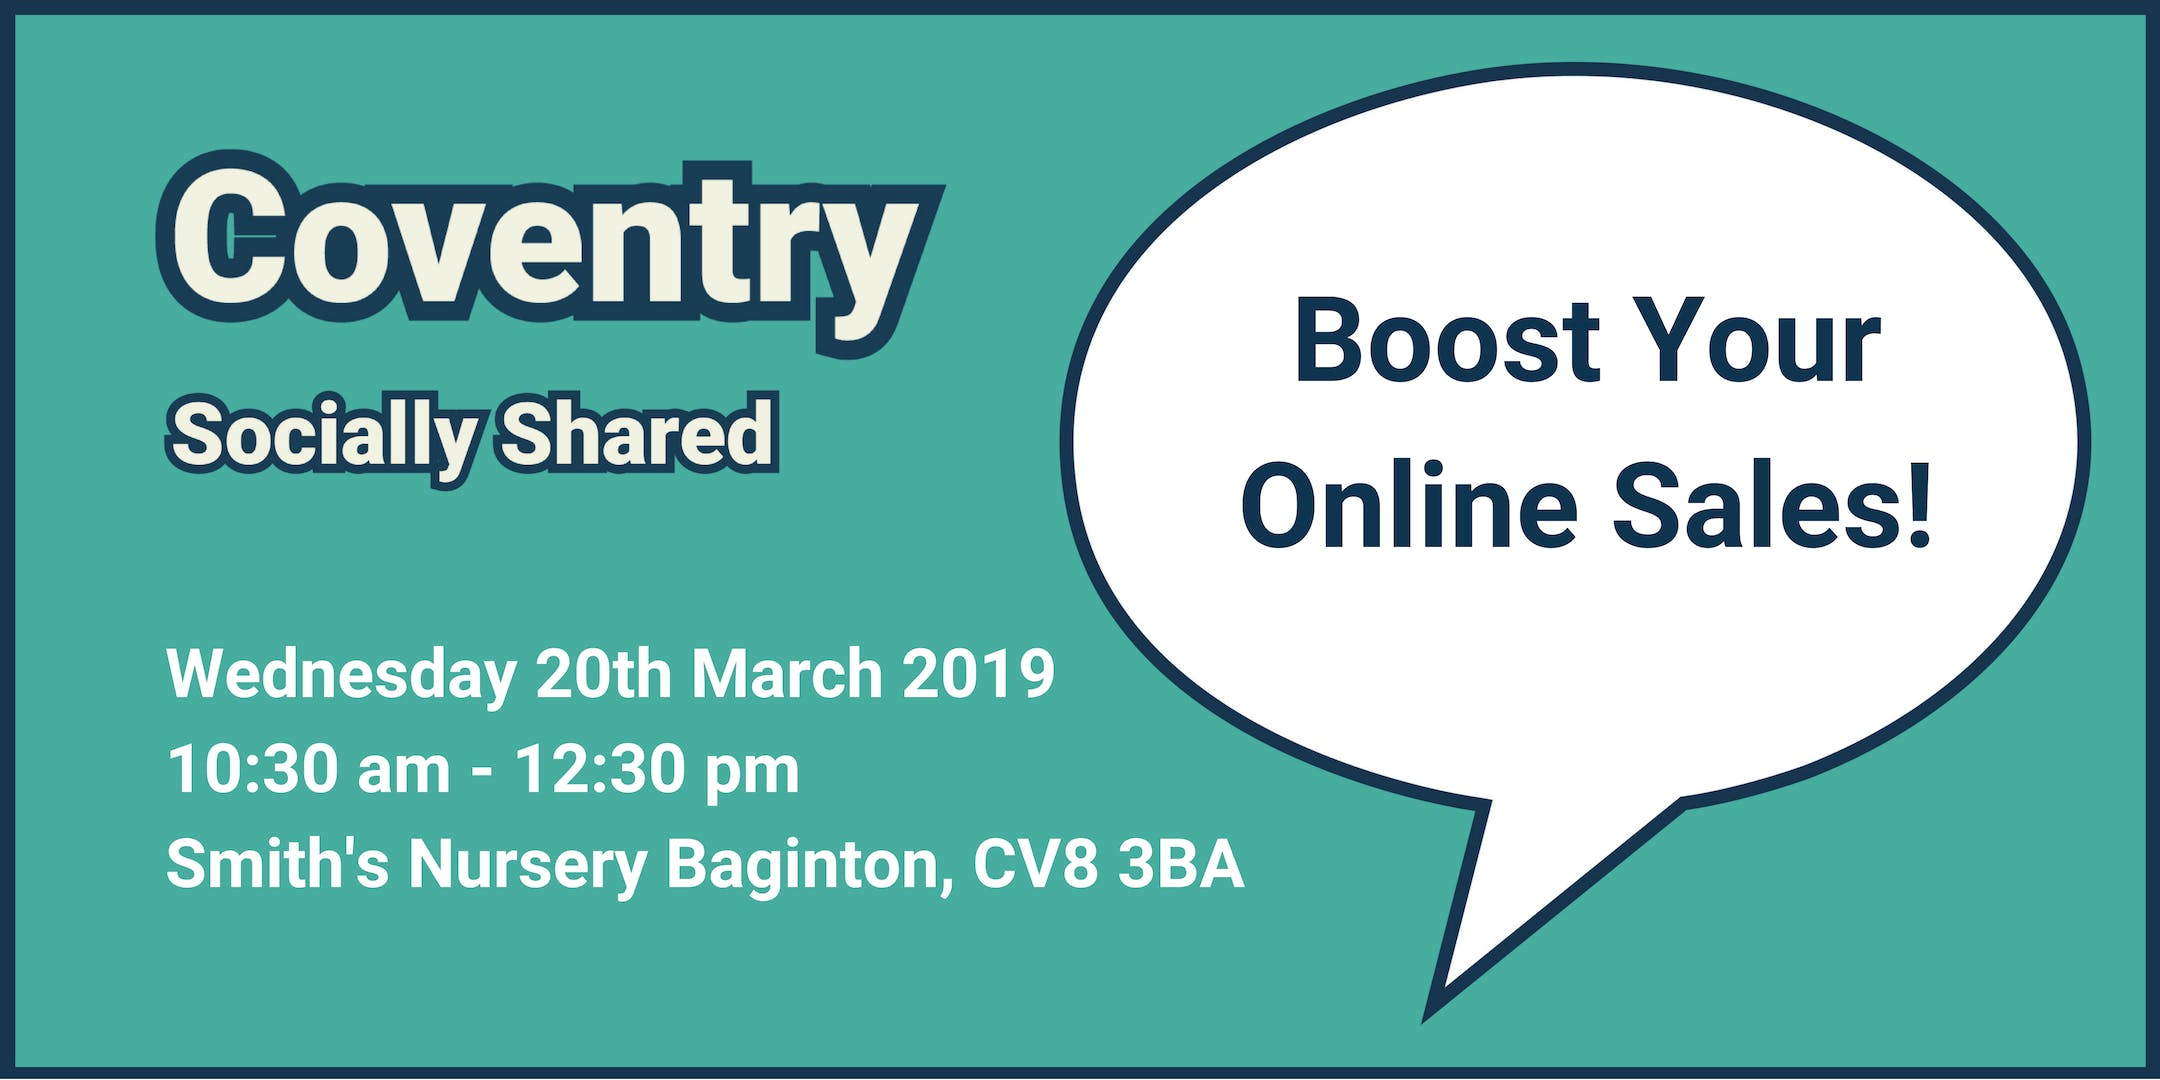 Coventry Socially Shared - 'Boost Your Online